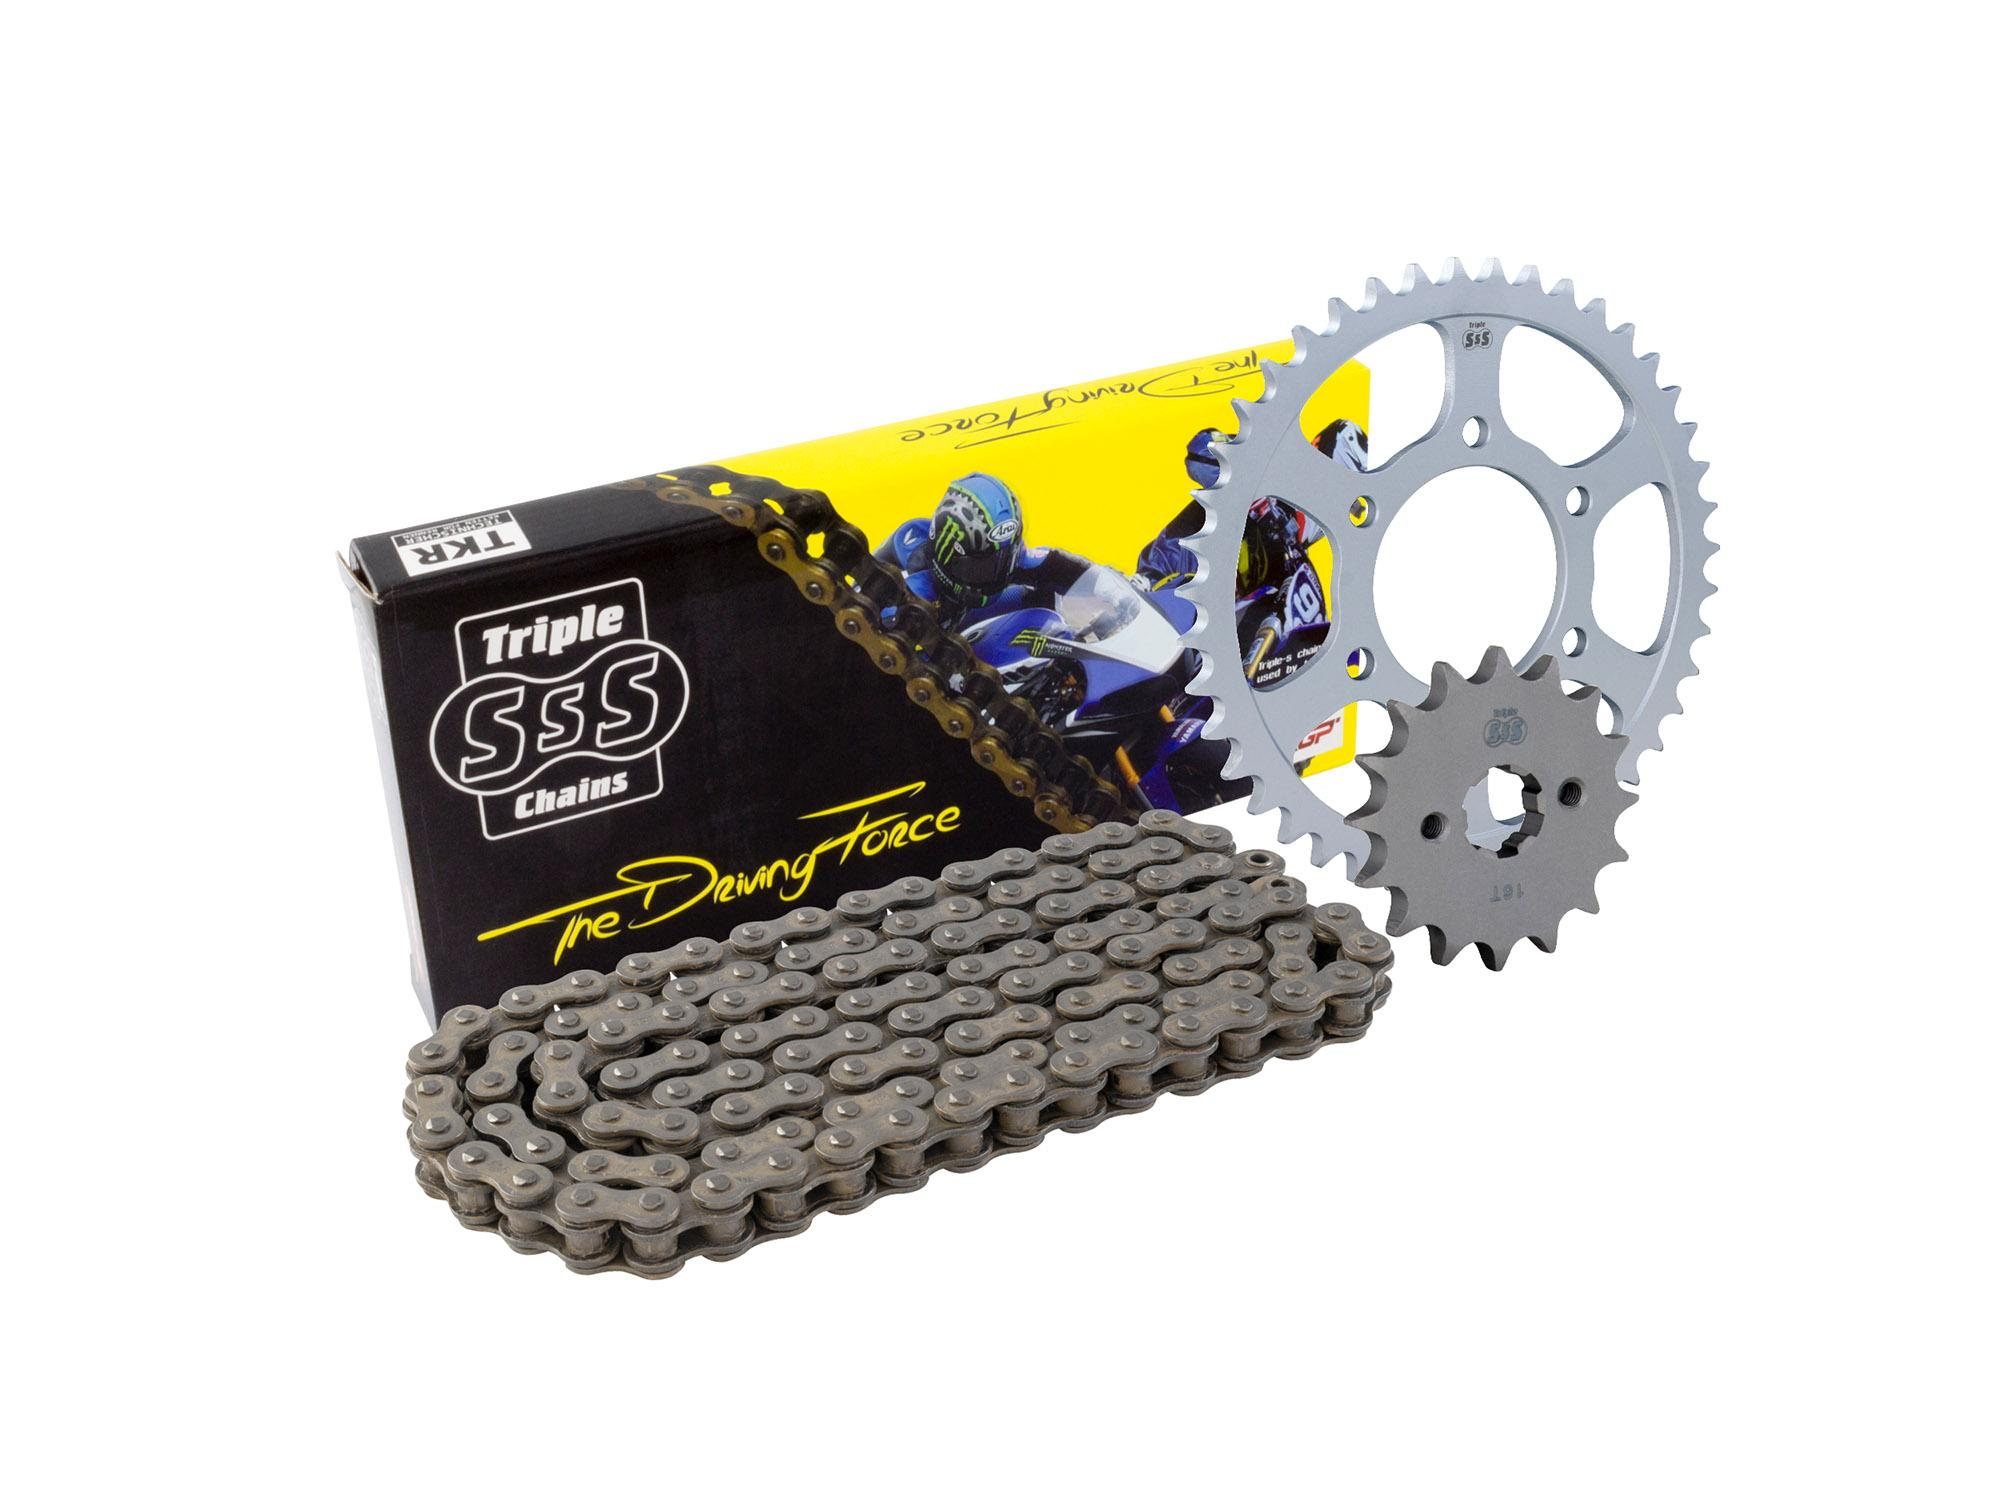 Ducati 900 Monster / ie 94-98, 00-01 Chain & Sprocket Kit: 15T Front, 39T Rear, HD O-Ring Black Chain 520H 98Link